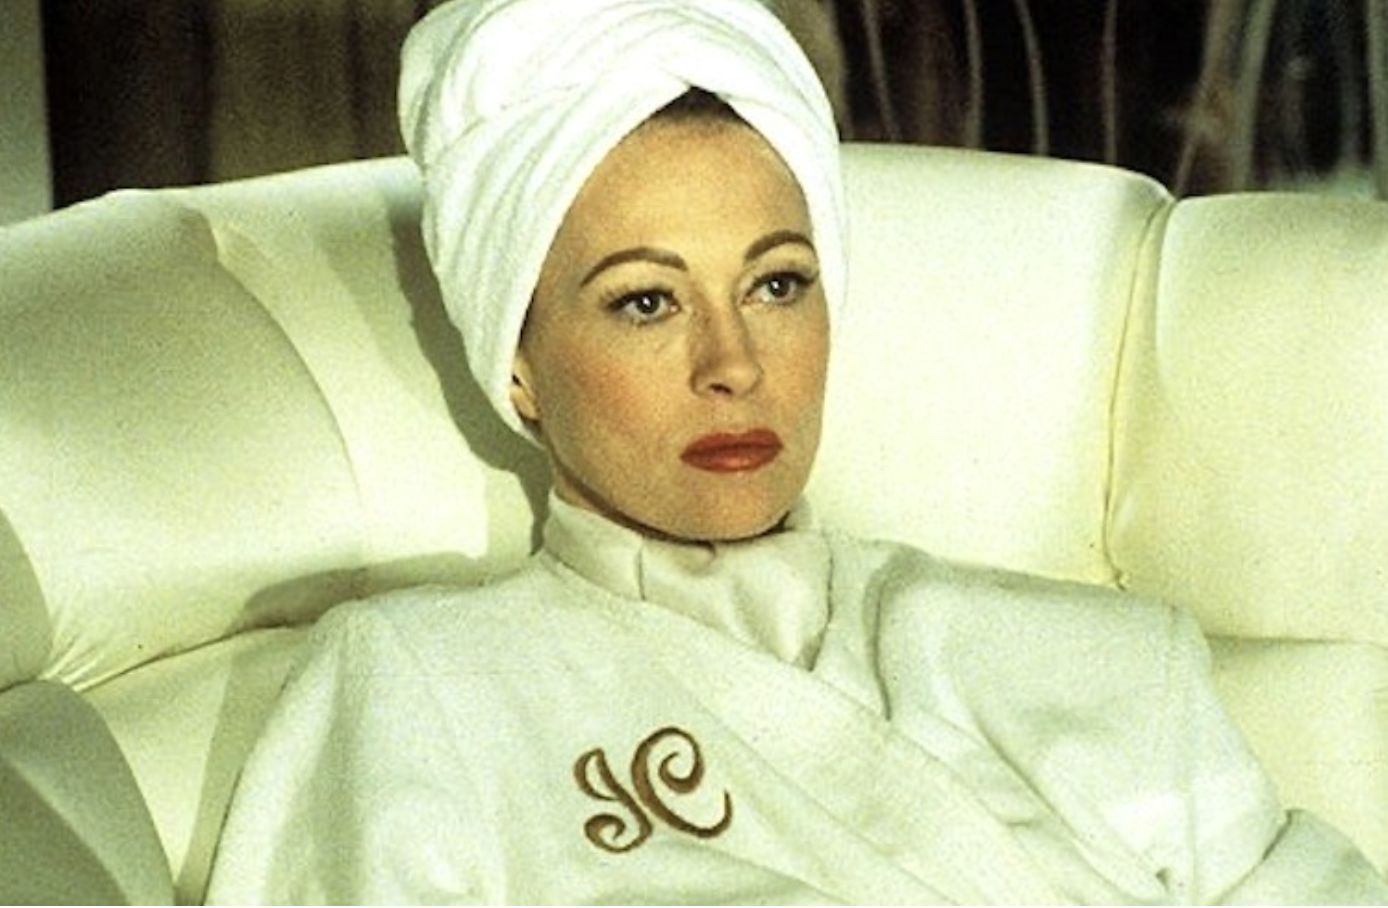 Faye Dunaway as Joan Crawford